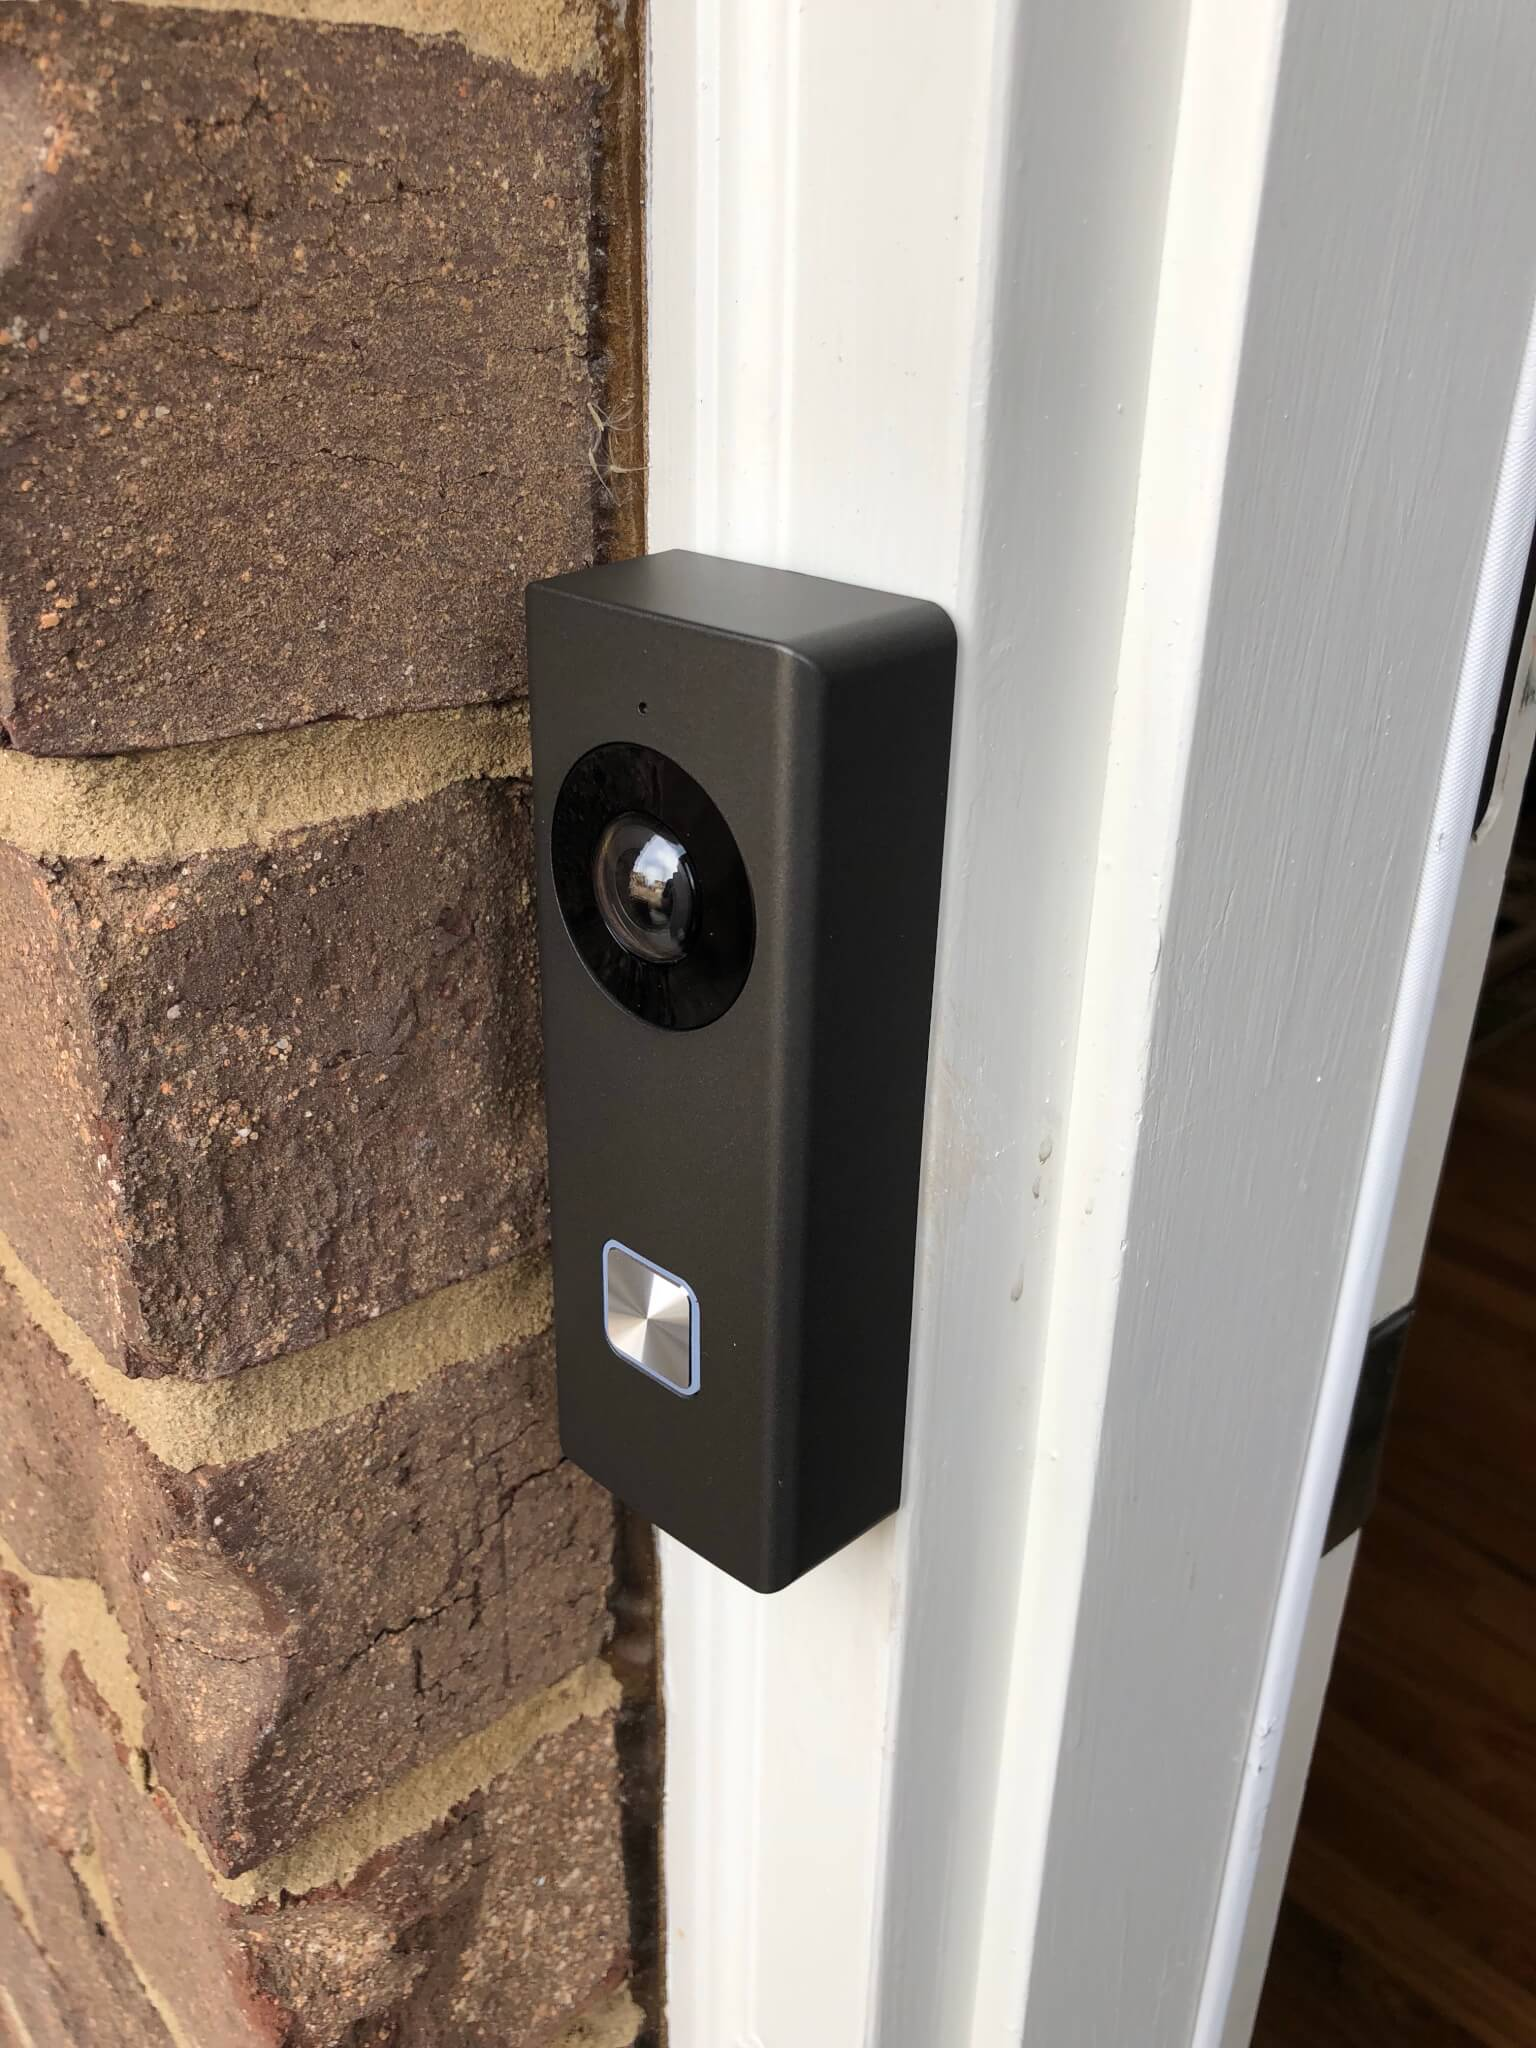 Installing the Nelly Security WiFi Video Doorbell